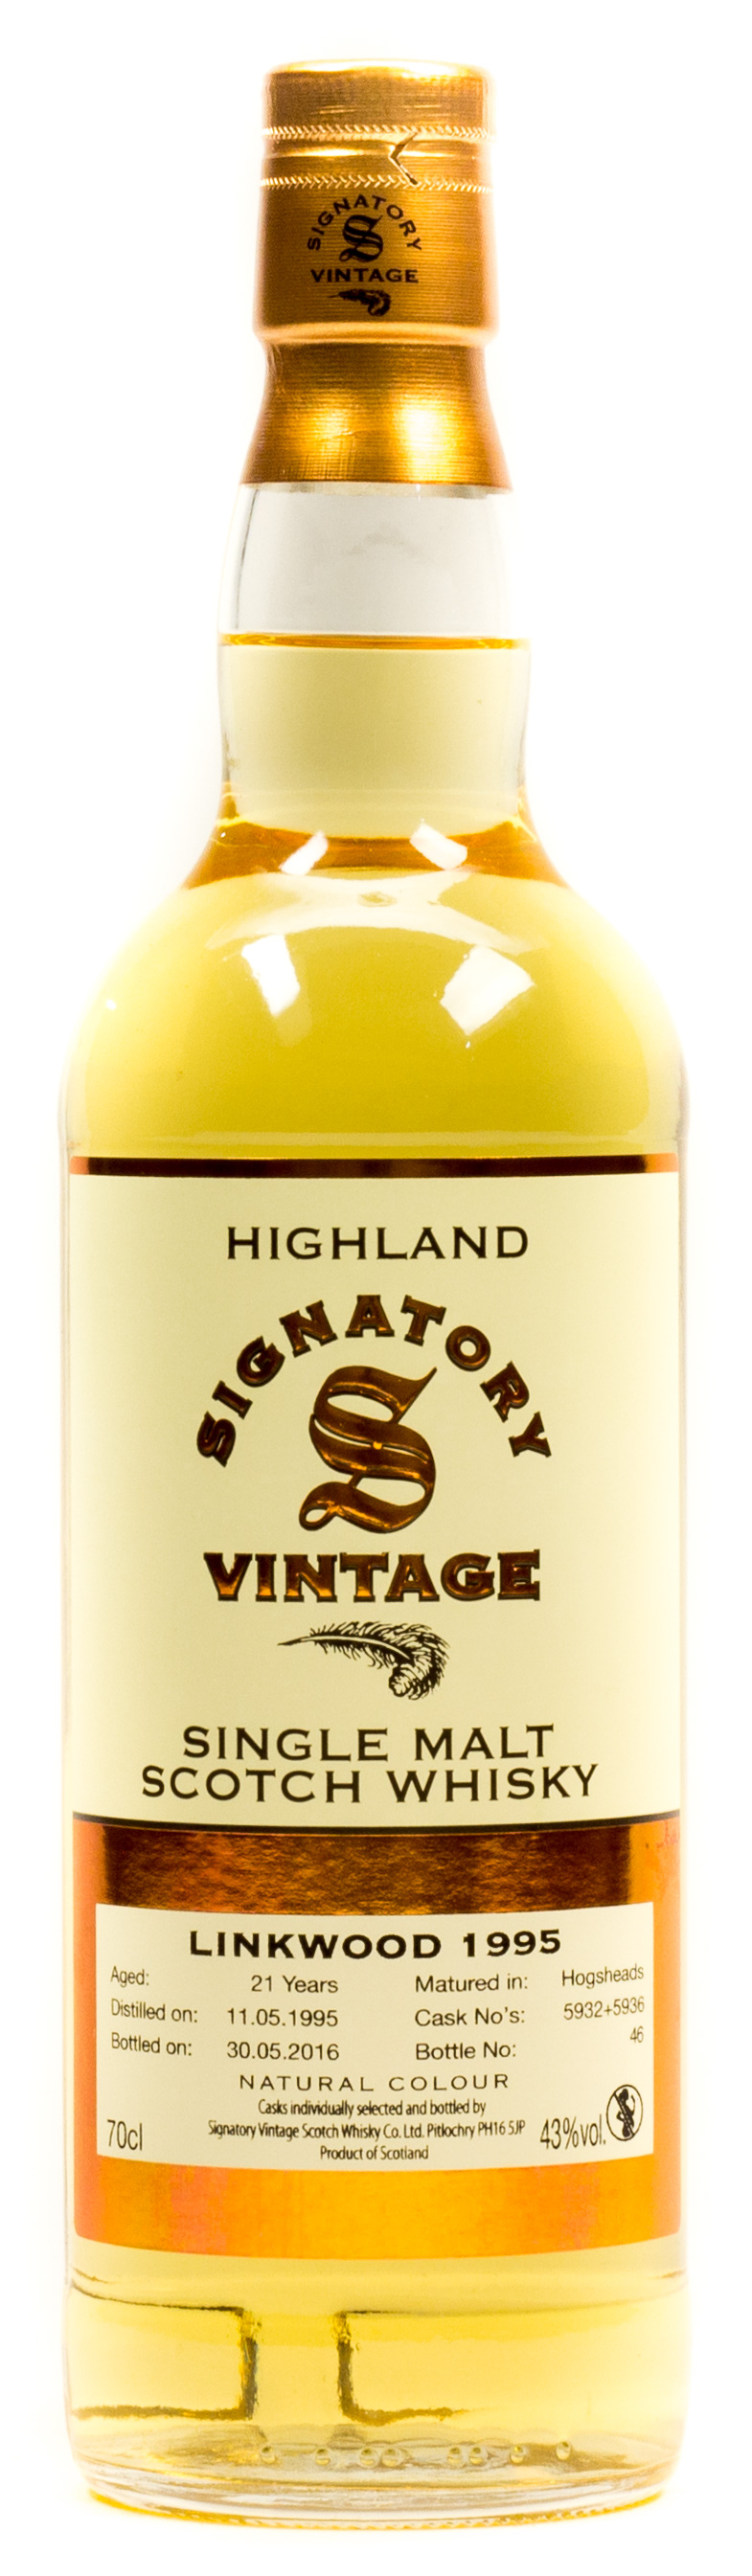 Signatory Vintage Linkwood 21 Years Single Malt Scotch Whisky 0,7 l